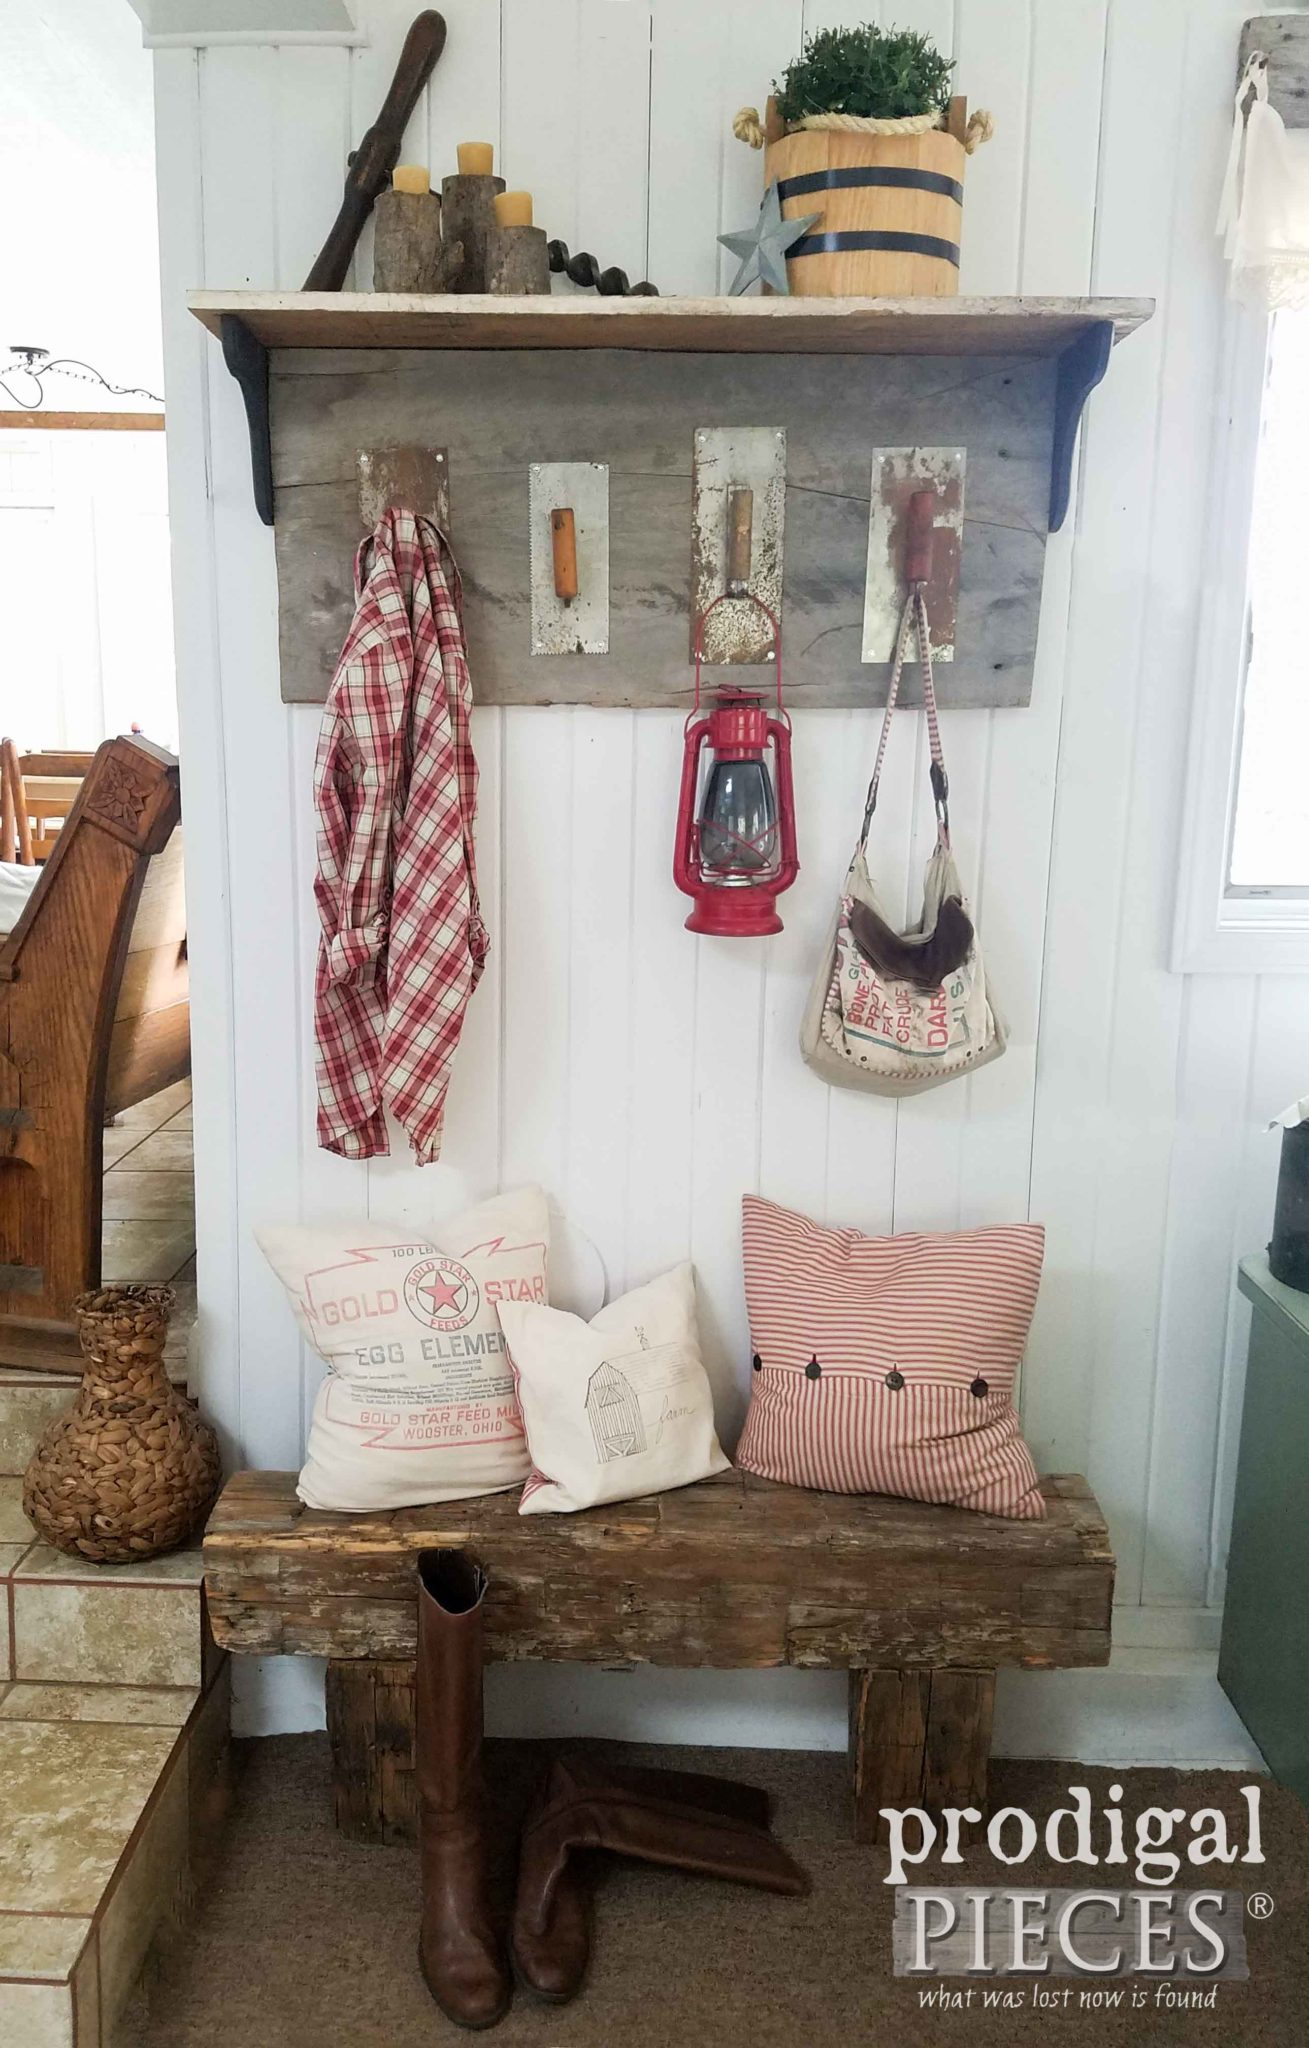 Reclaimed Barn Wood & Trowel Coat Rack with Shelf by Prodigal Pieces. Get the DIY tutorial at prodigalpieces.com